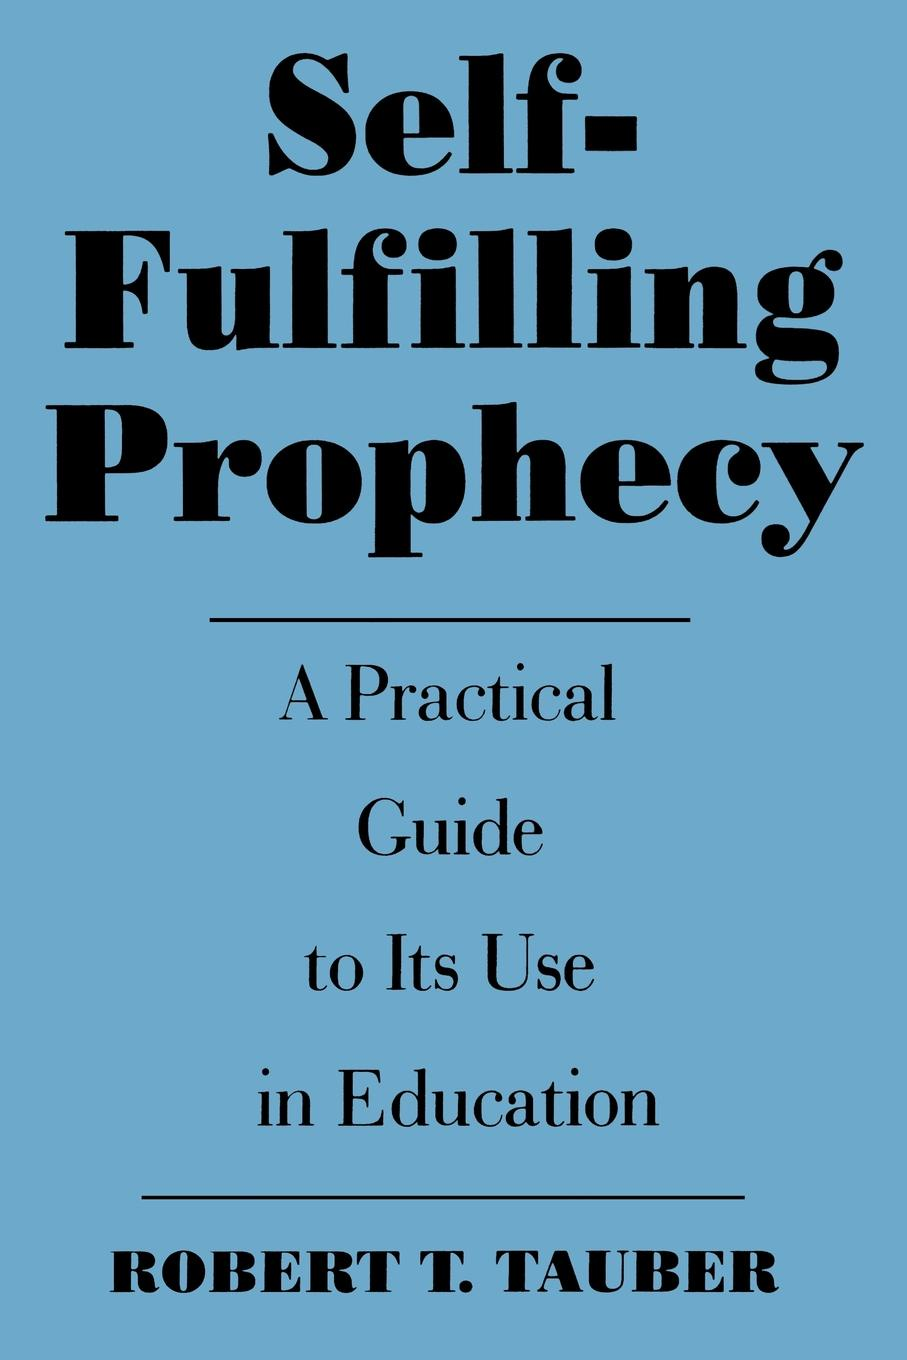 купить Robert T. Tauber Self-Fulfilling Prophecy. A Practical Guide to Its Use in Education по цене 4027 рублей